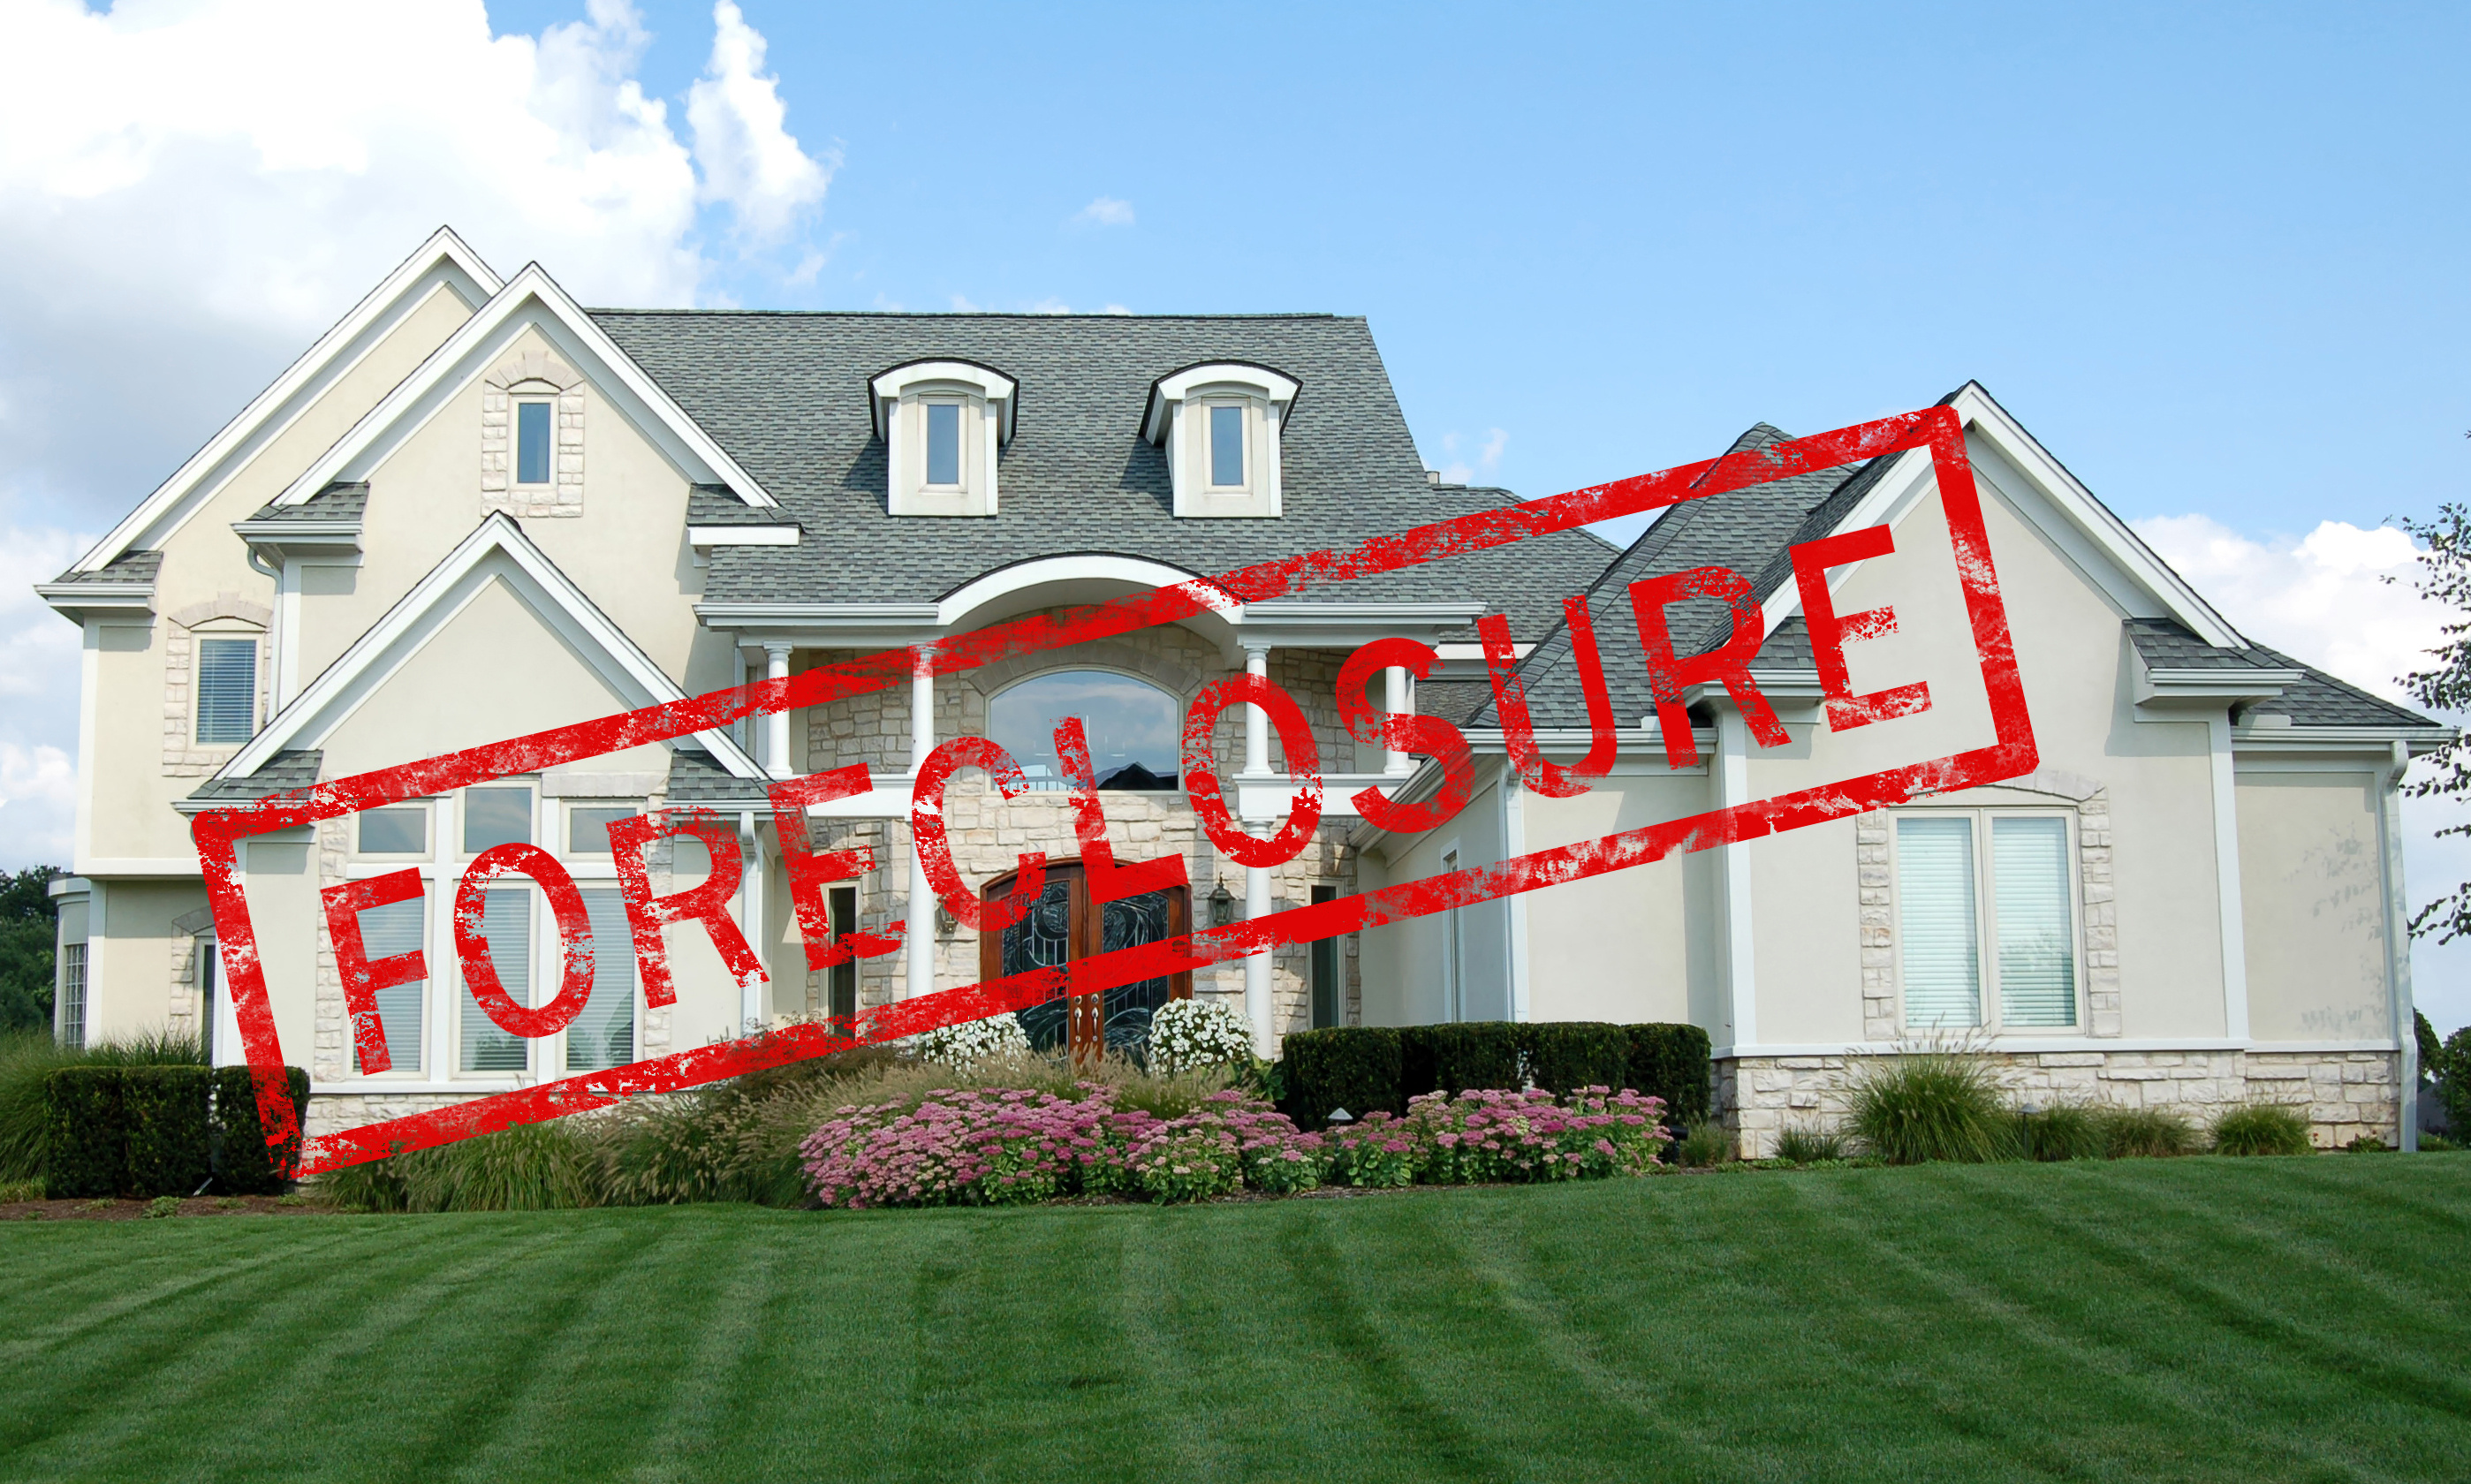 Call Double J Appraisals, LLC. to order valuations of Genesee foreclosures